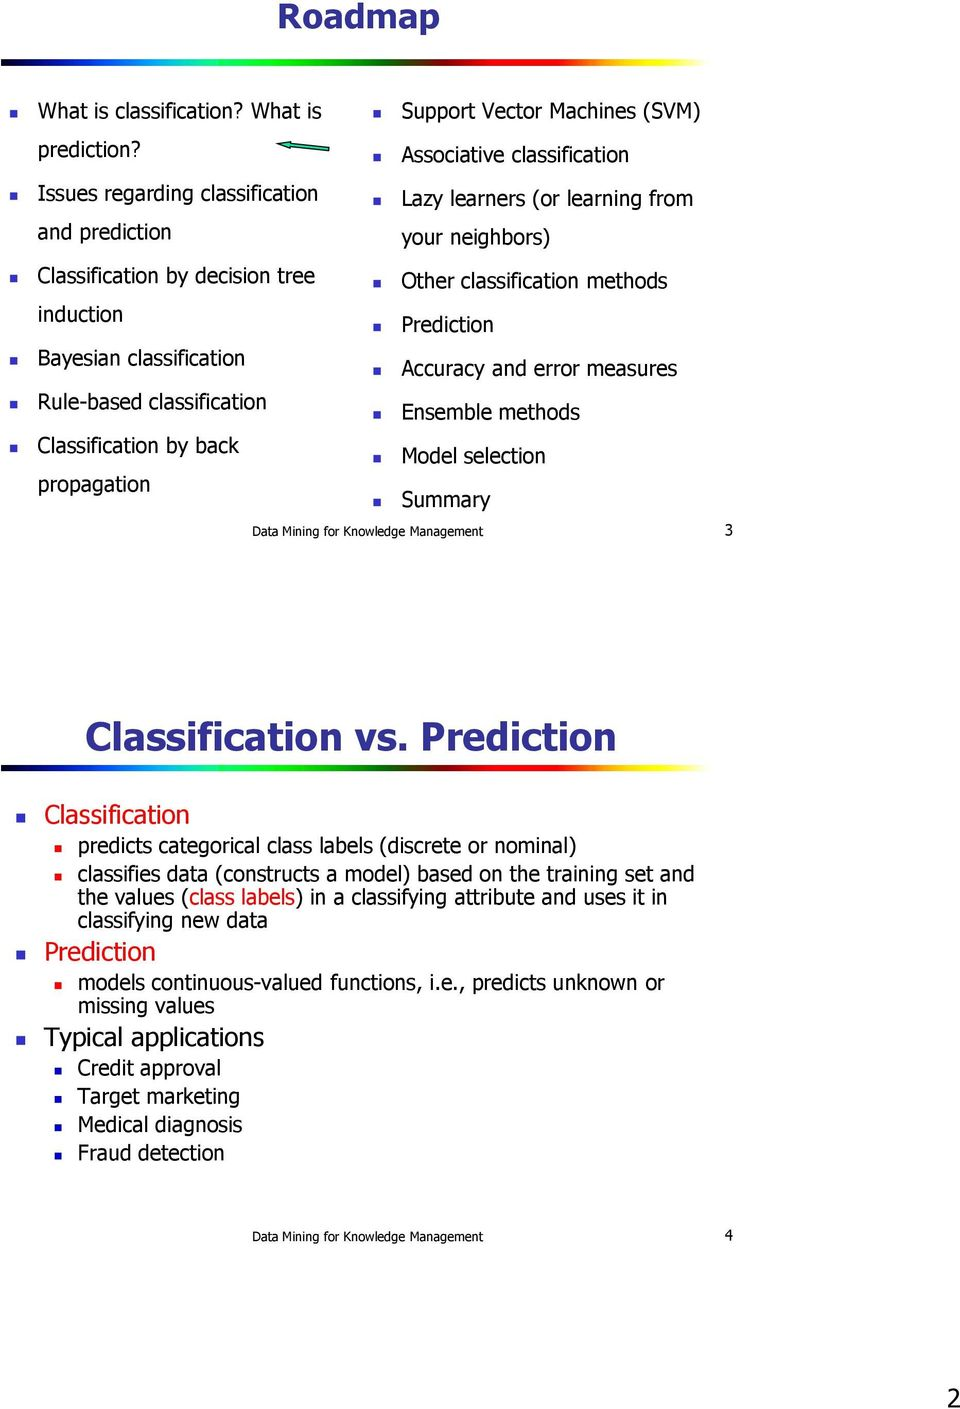 Prediction Bayesian classification Accuracy and error measures Rule-based classification Ensemble methods Classification by back Model selection propagation Summary Data Mining for Knowledge